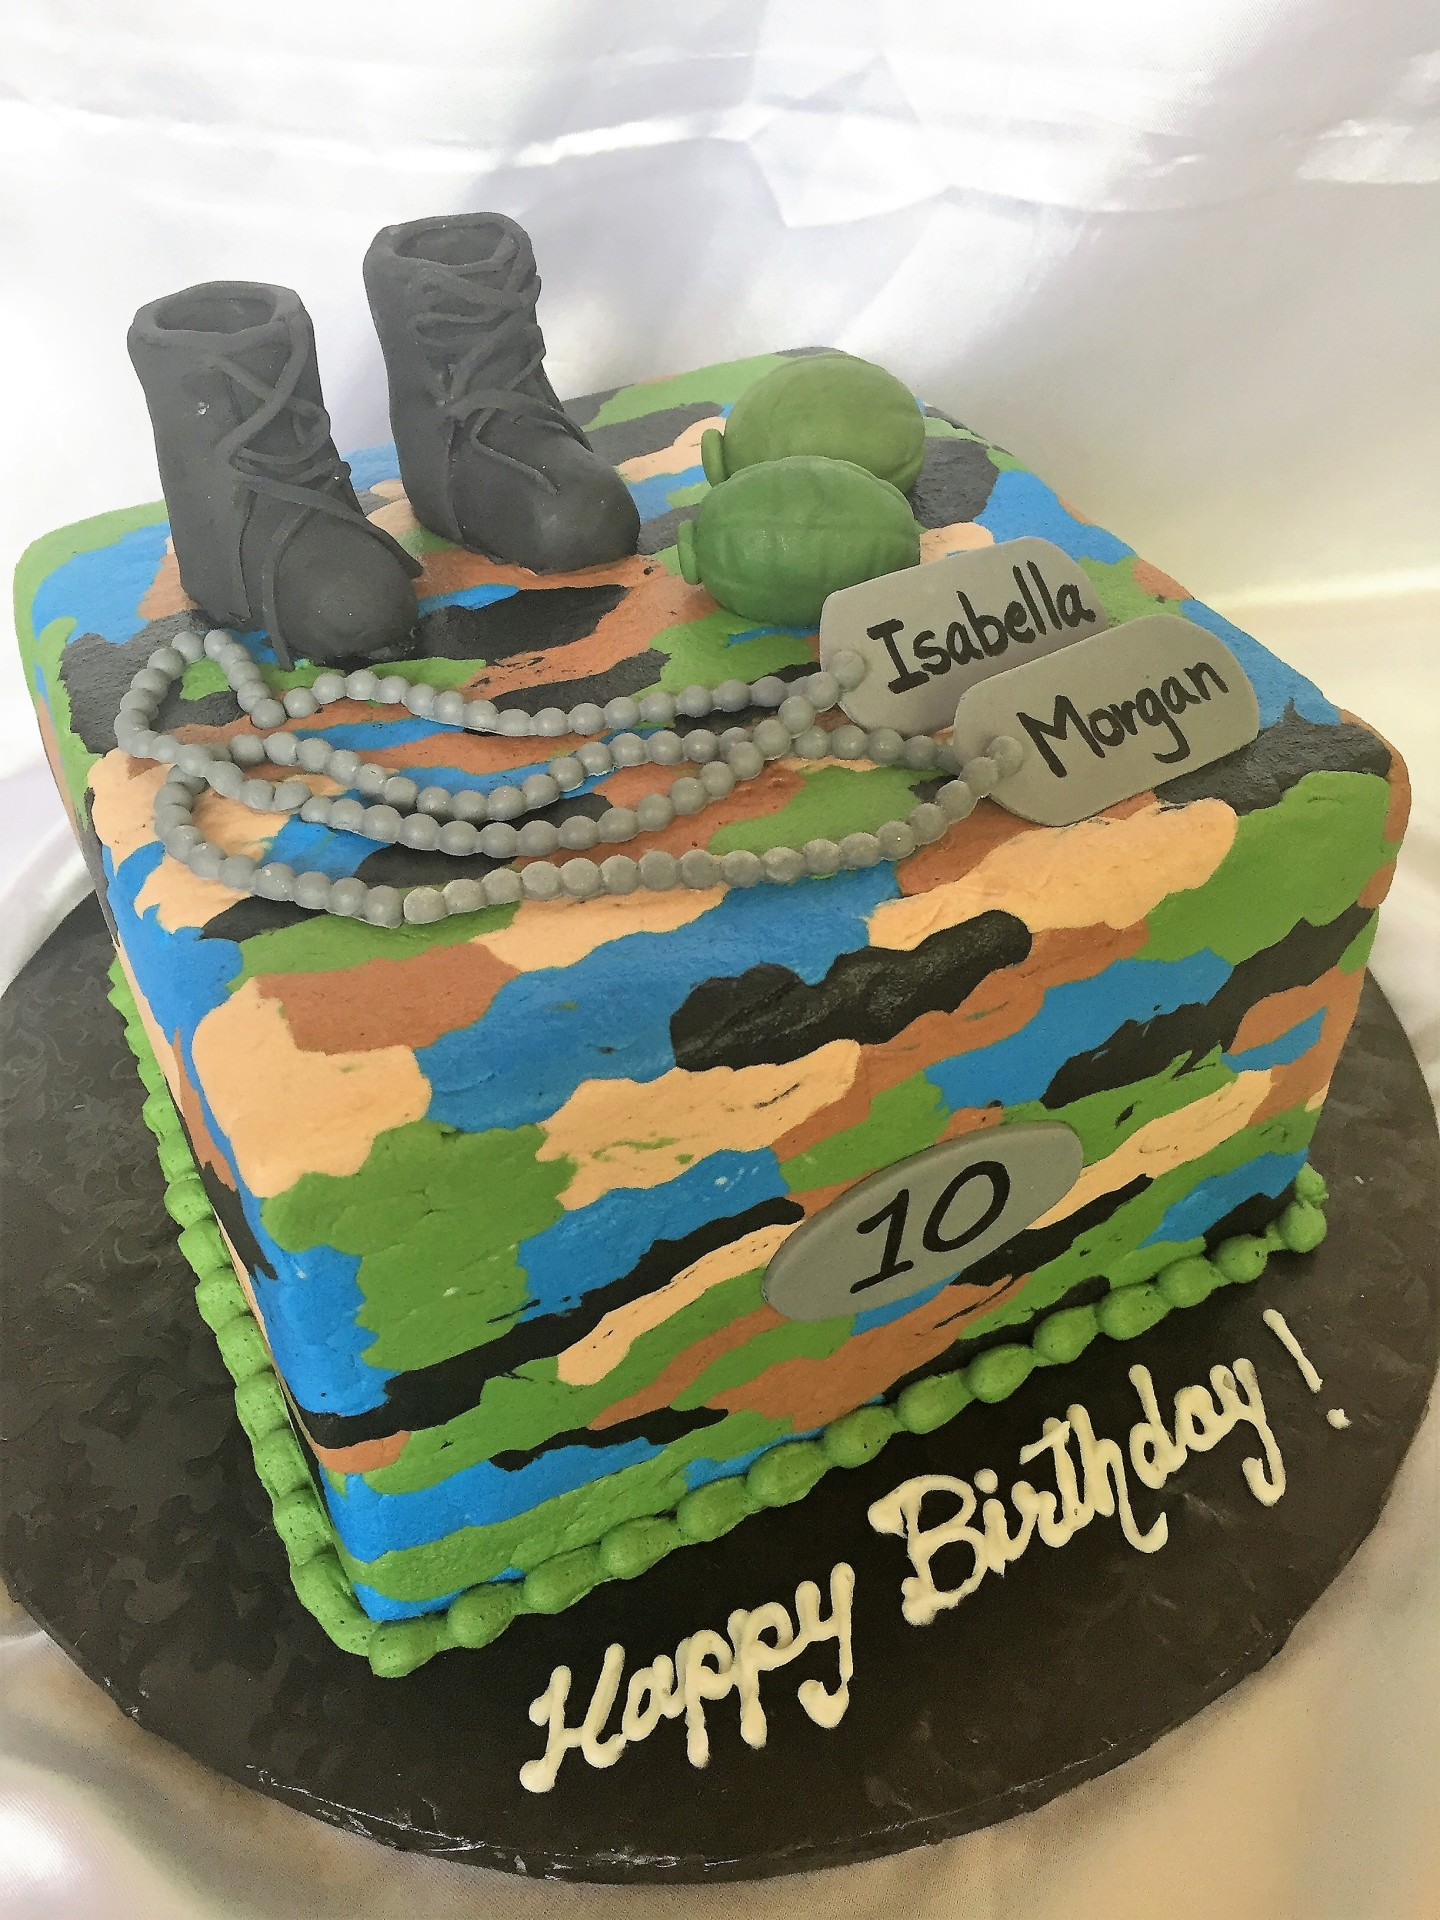 Blue buttercream camo with boots and tags